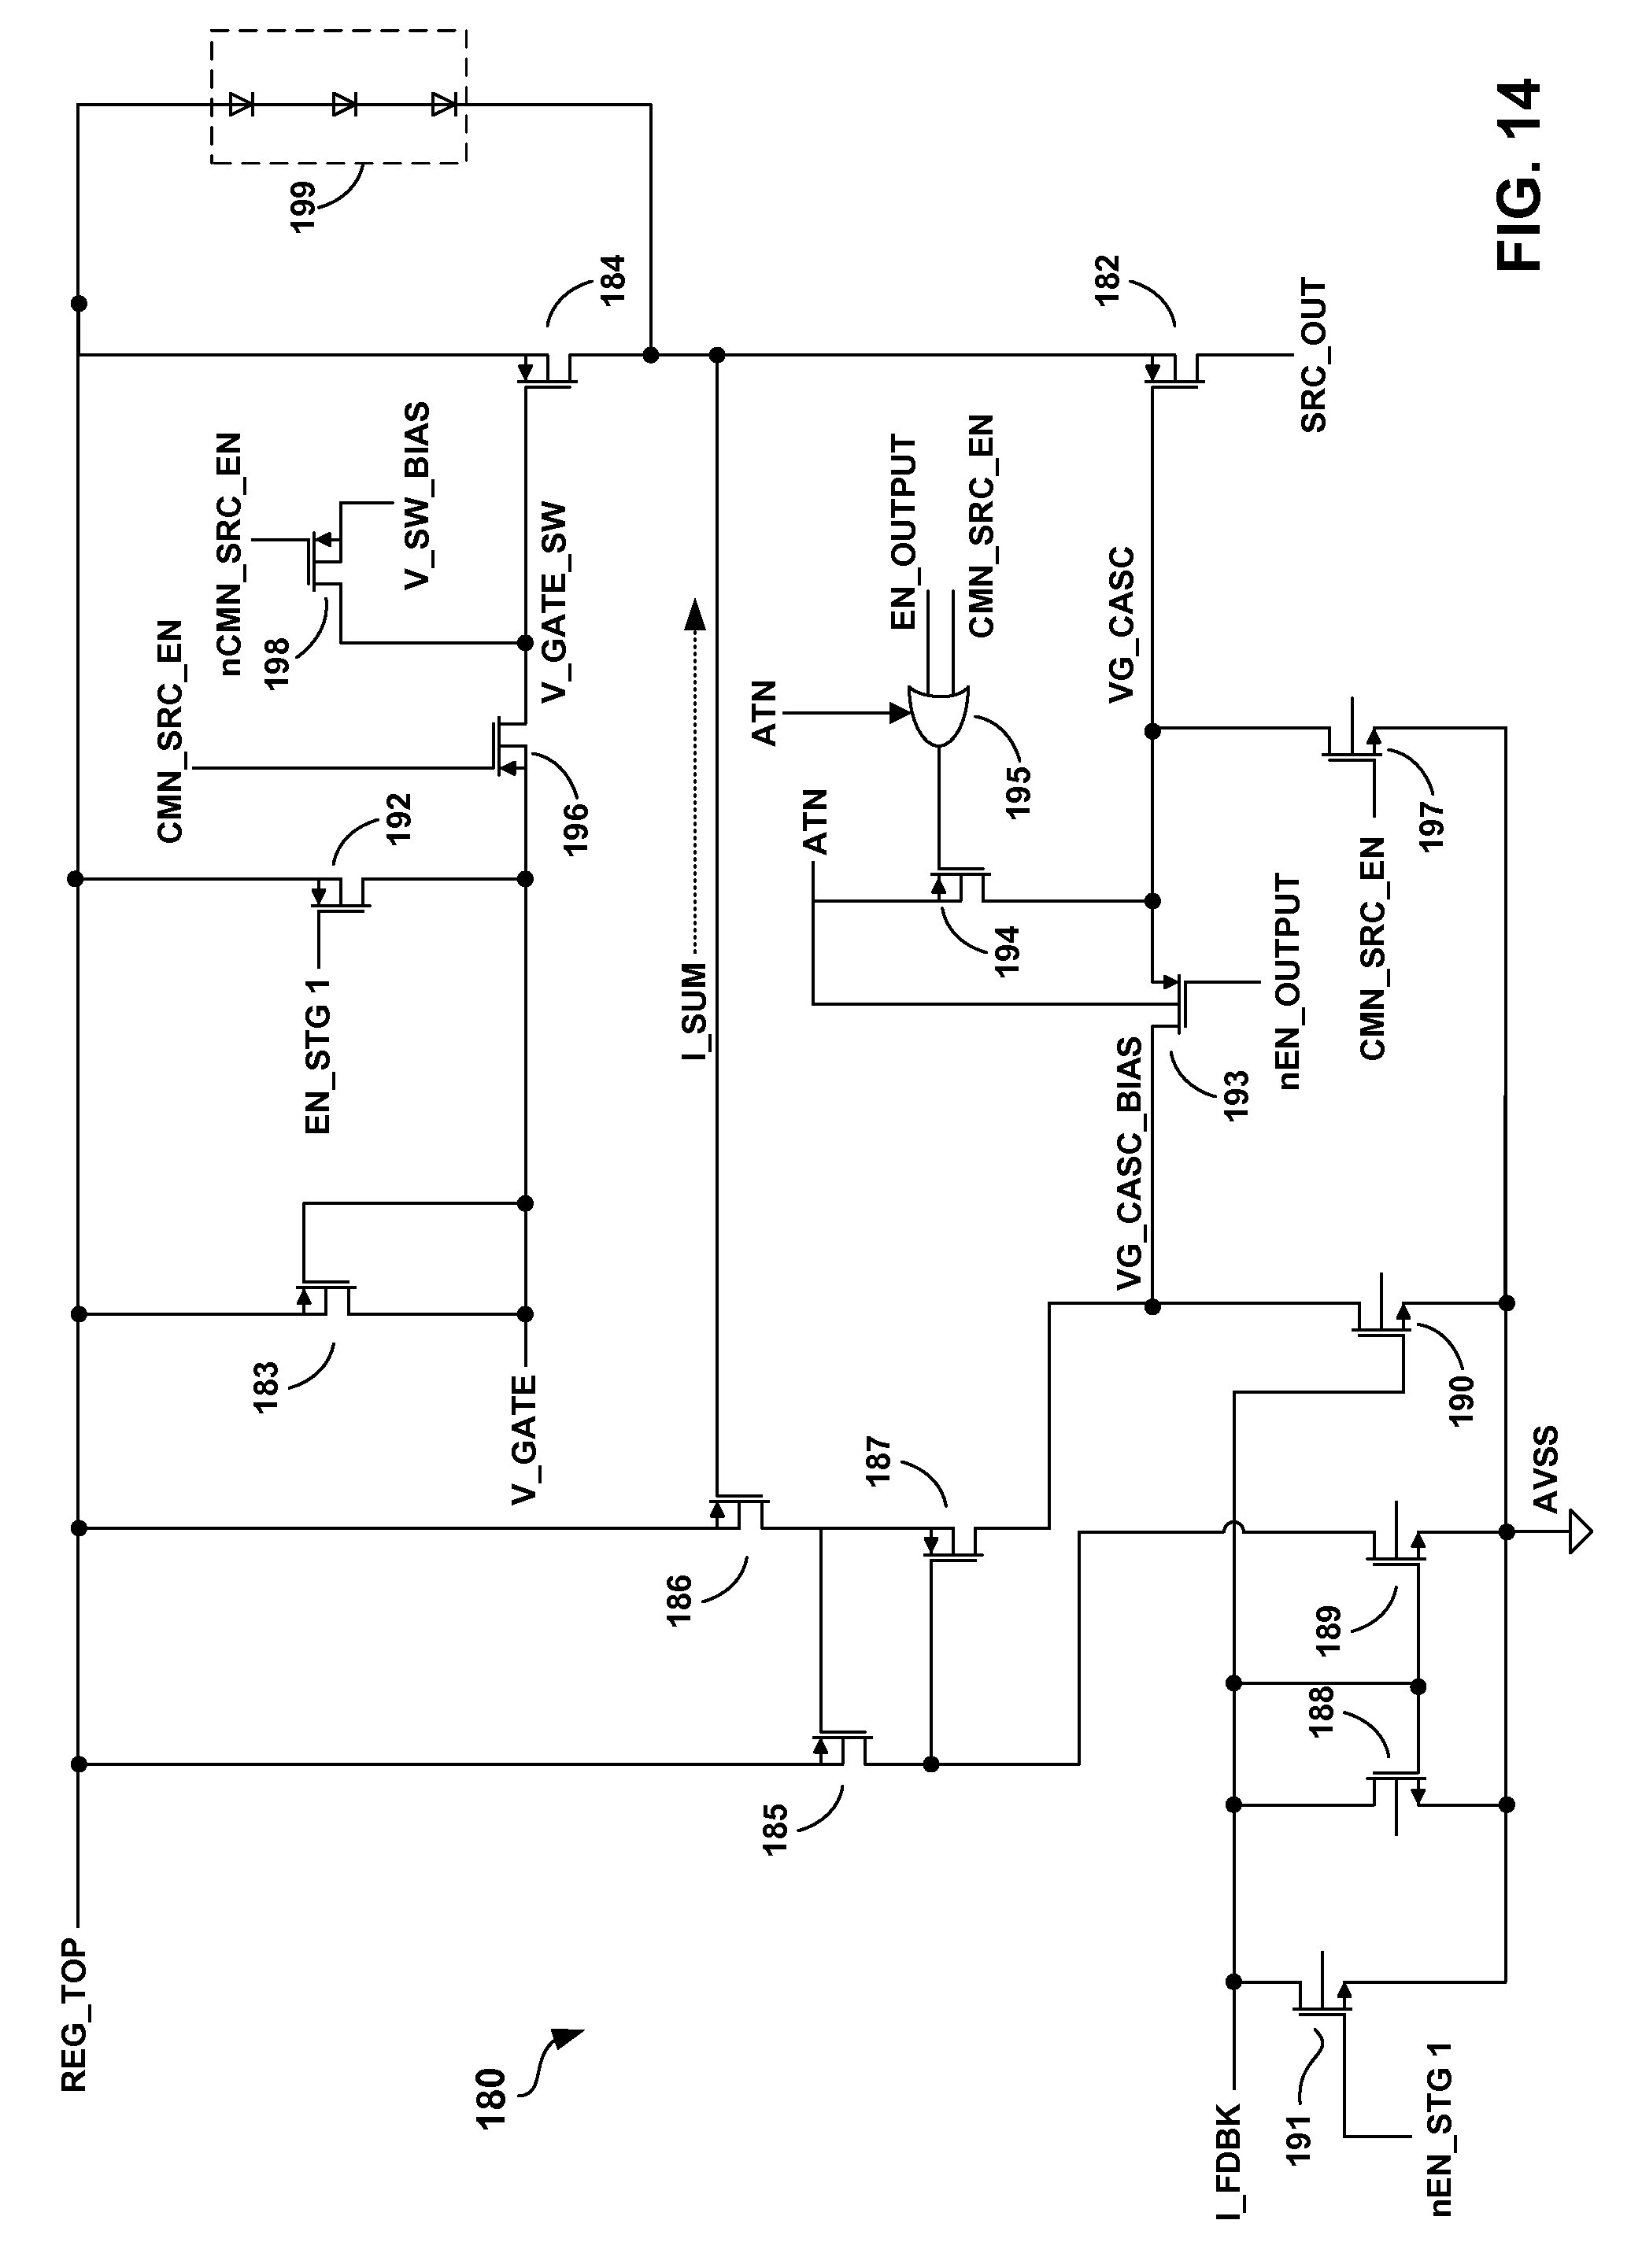 US6198091 as well US20100106231 as well Led Matrix Implementation With 8051 additionally US20060127734 likewise US20140227609. on what are cathodes and anodes